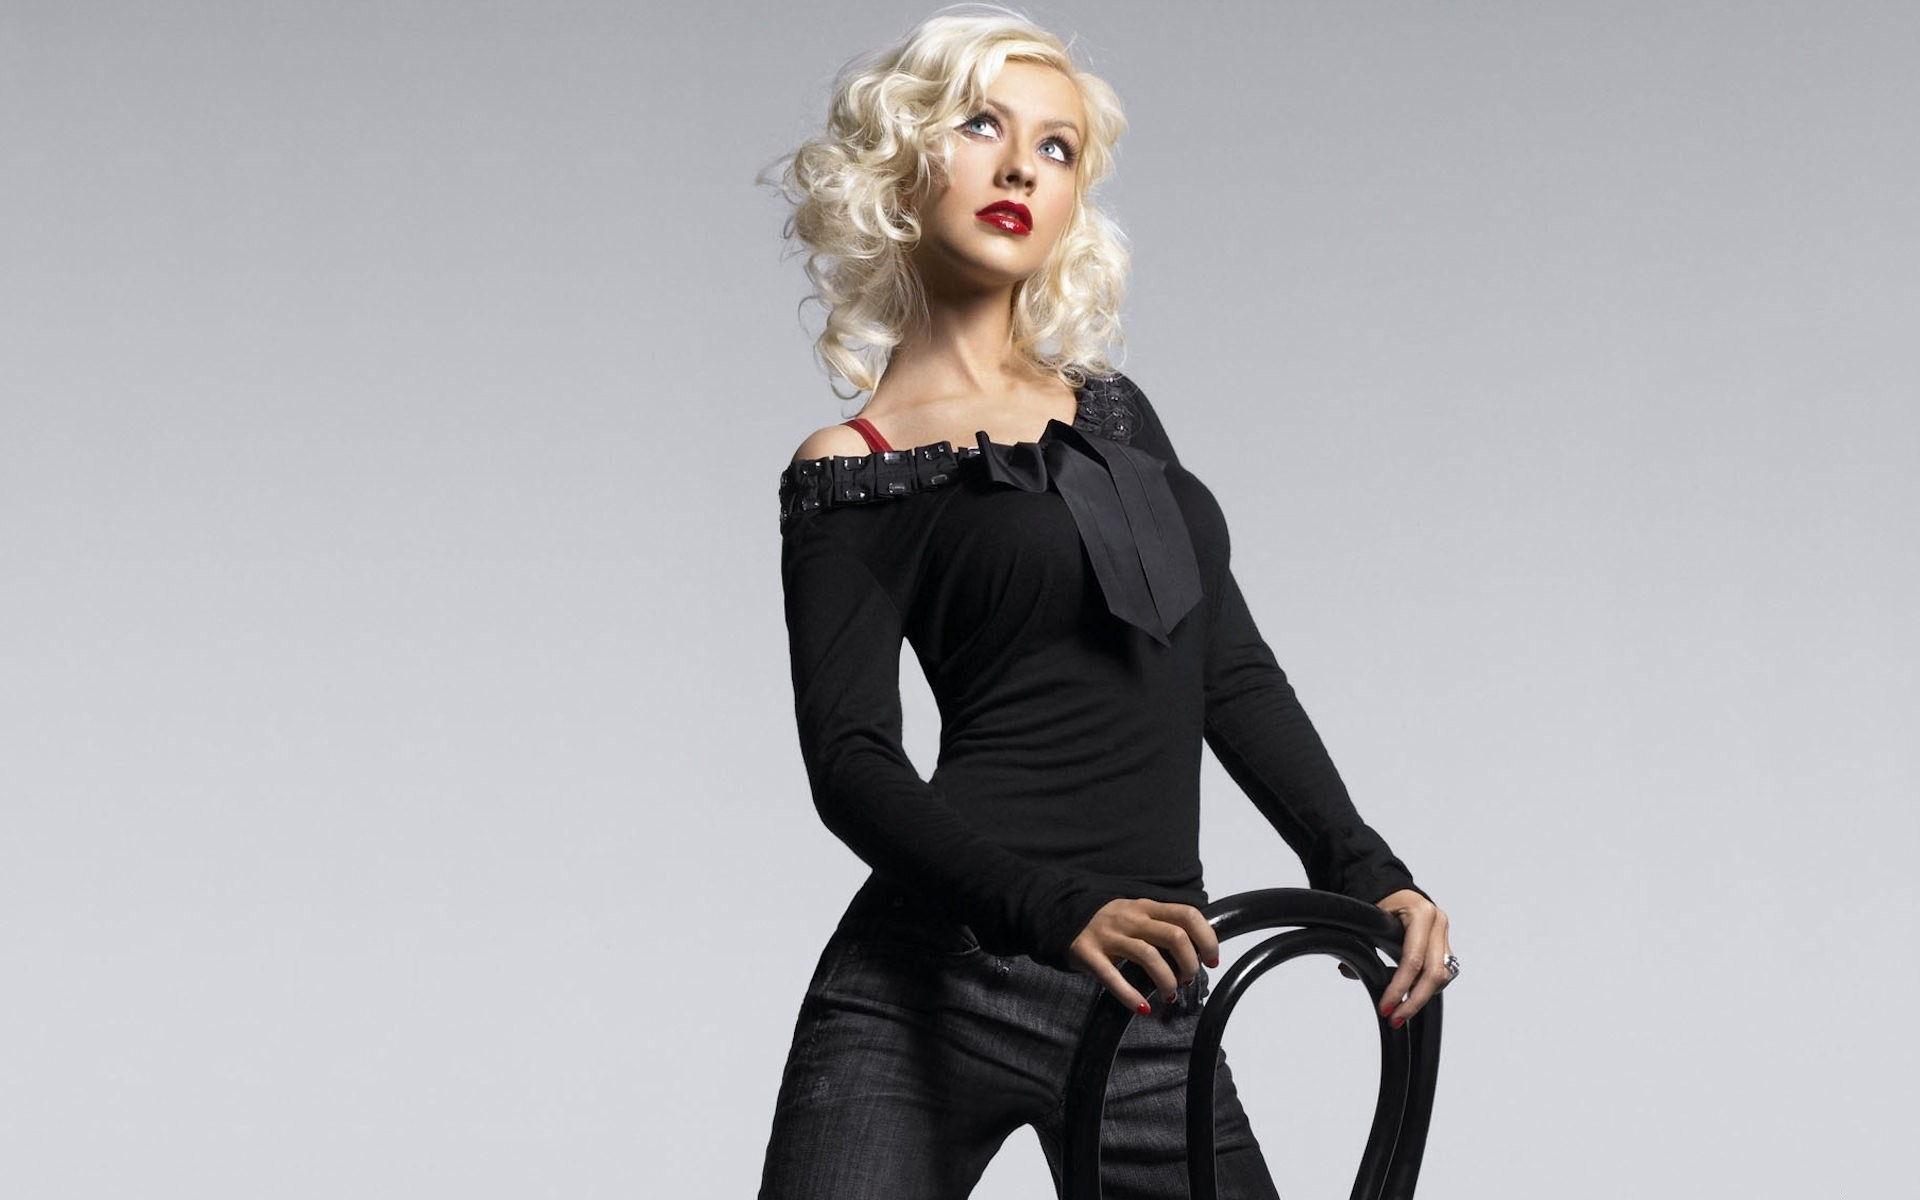 Girls Dubstep Wallpaper Christina Aguilera Wallpapers Pictures Images